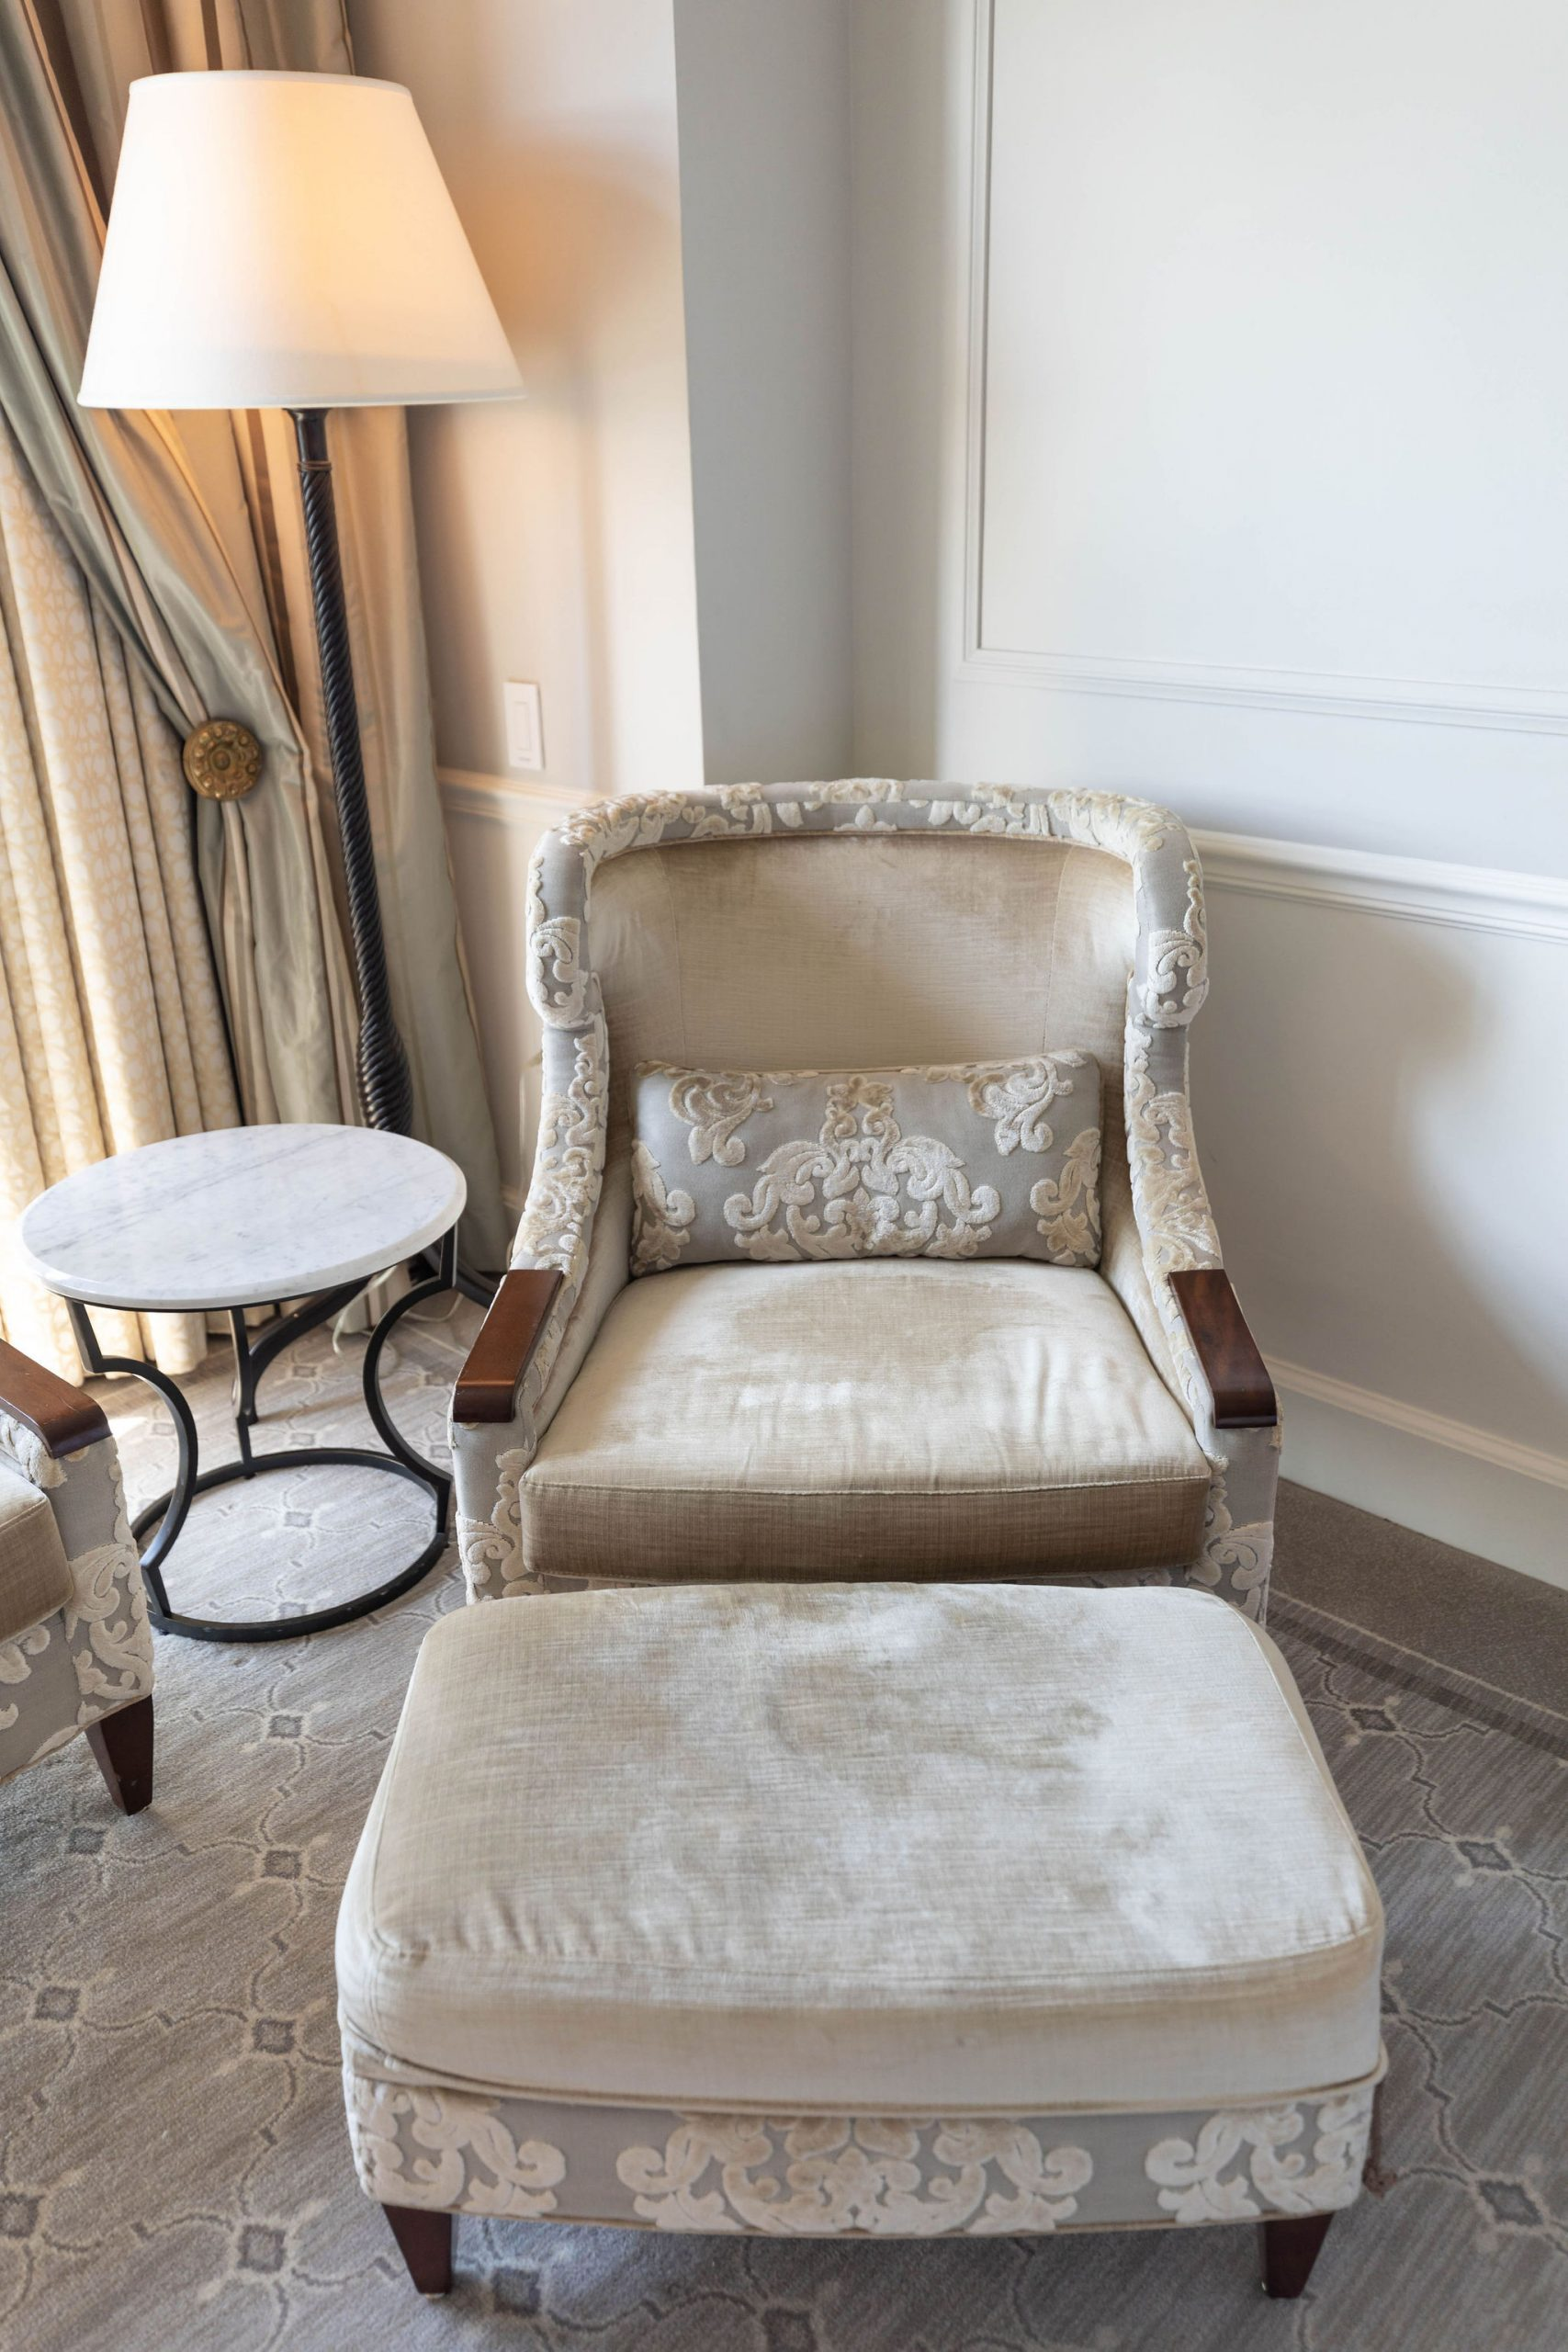 Premier King Room with Balcony at Belmond Charleston Place luxury Hotels of the World South Carolina Resorts Written & Photographed by Annie Fairfax